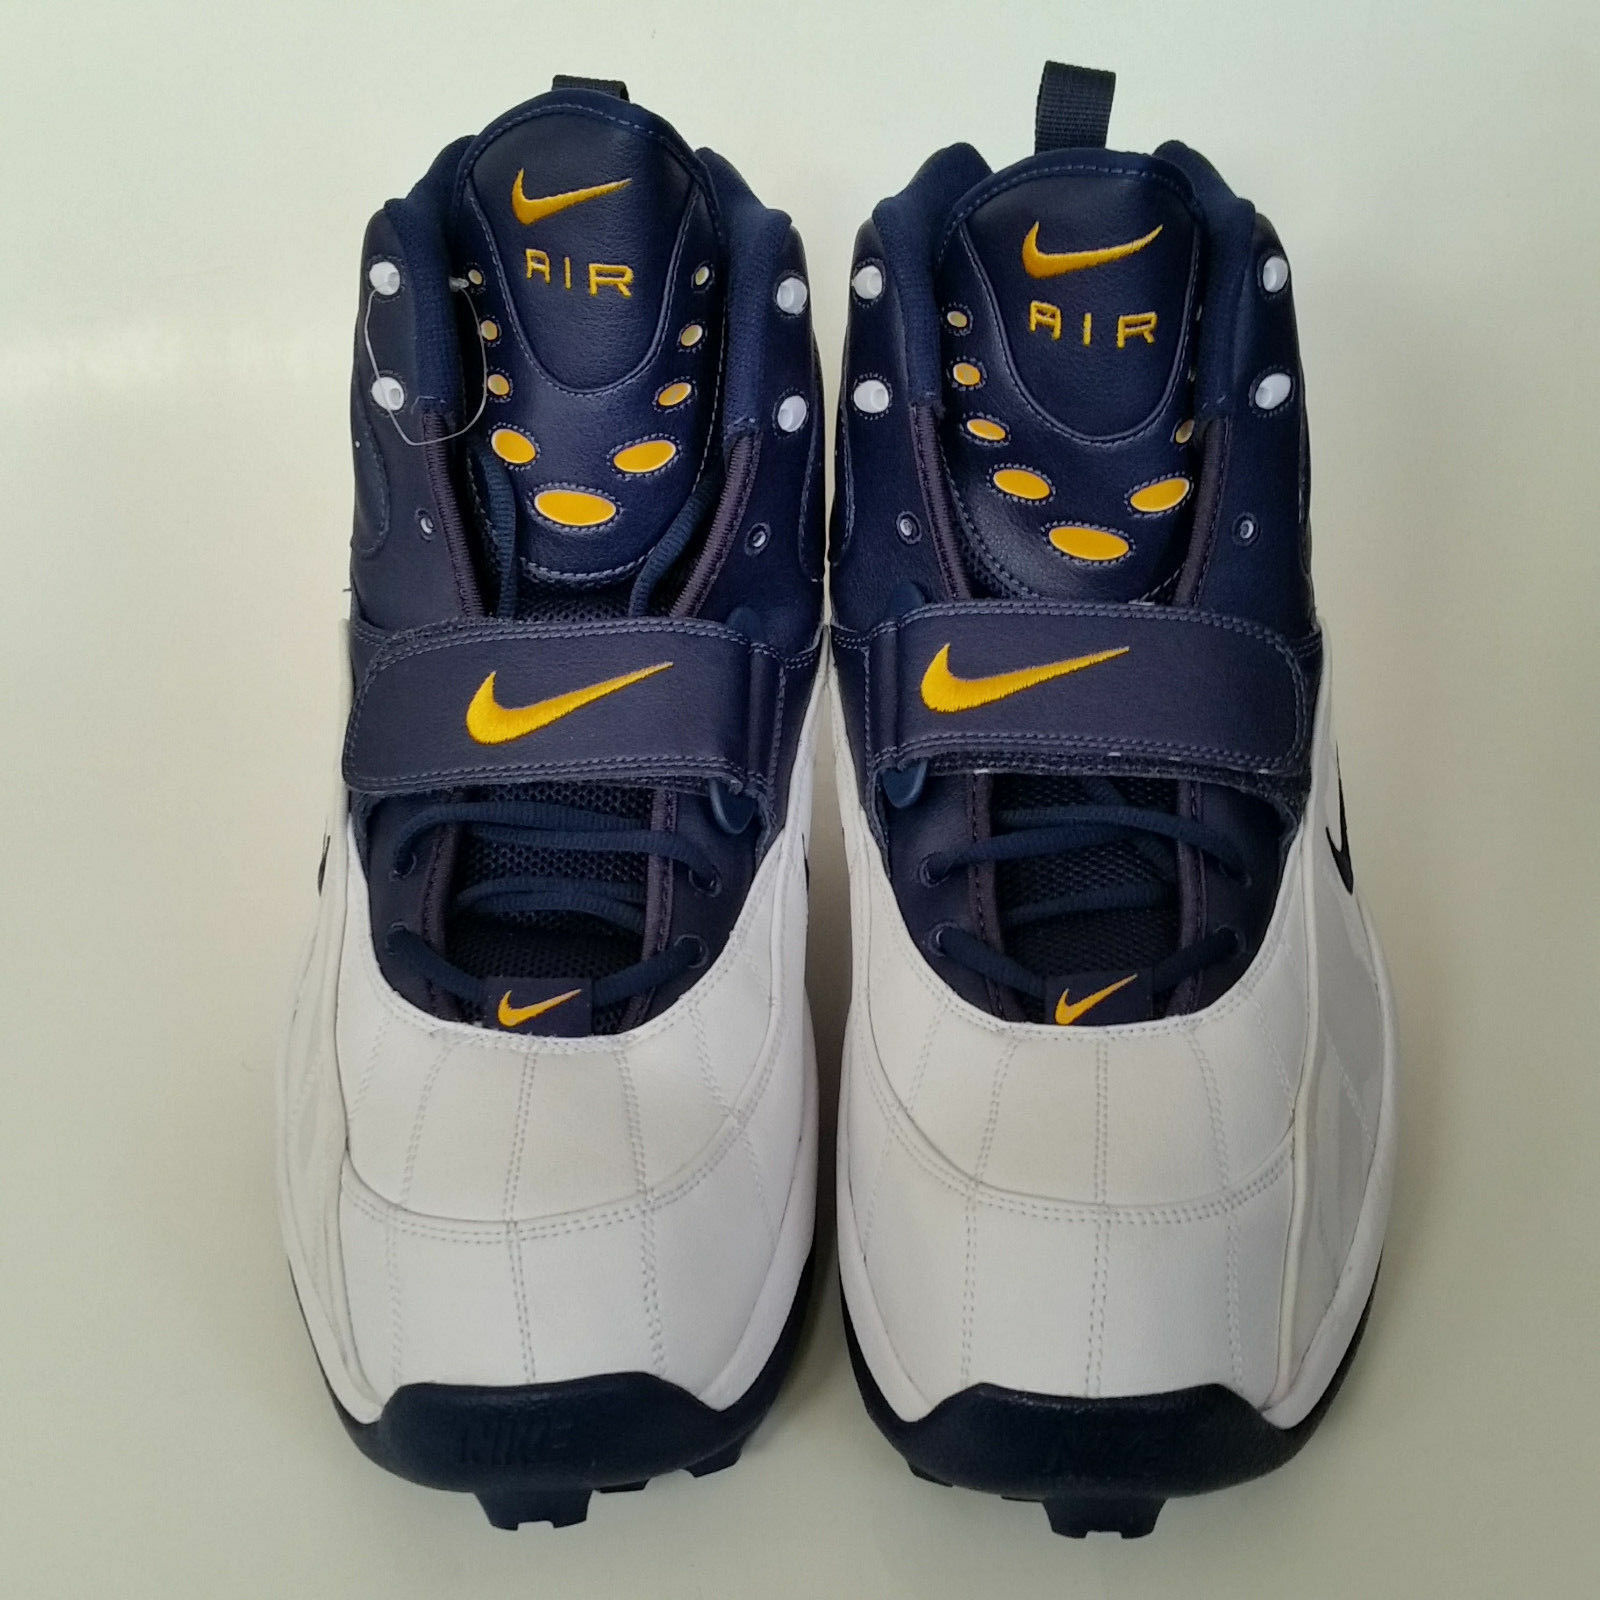 Nike Air Zoom Pro Cleats Shark 3/4 Lineman Football Cleats Pro Size 18  Michigan Wolverines 03538a